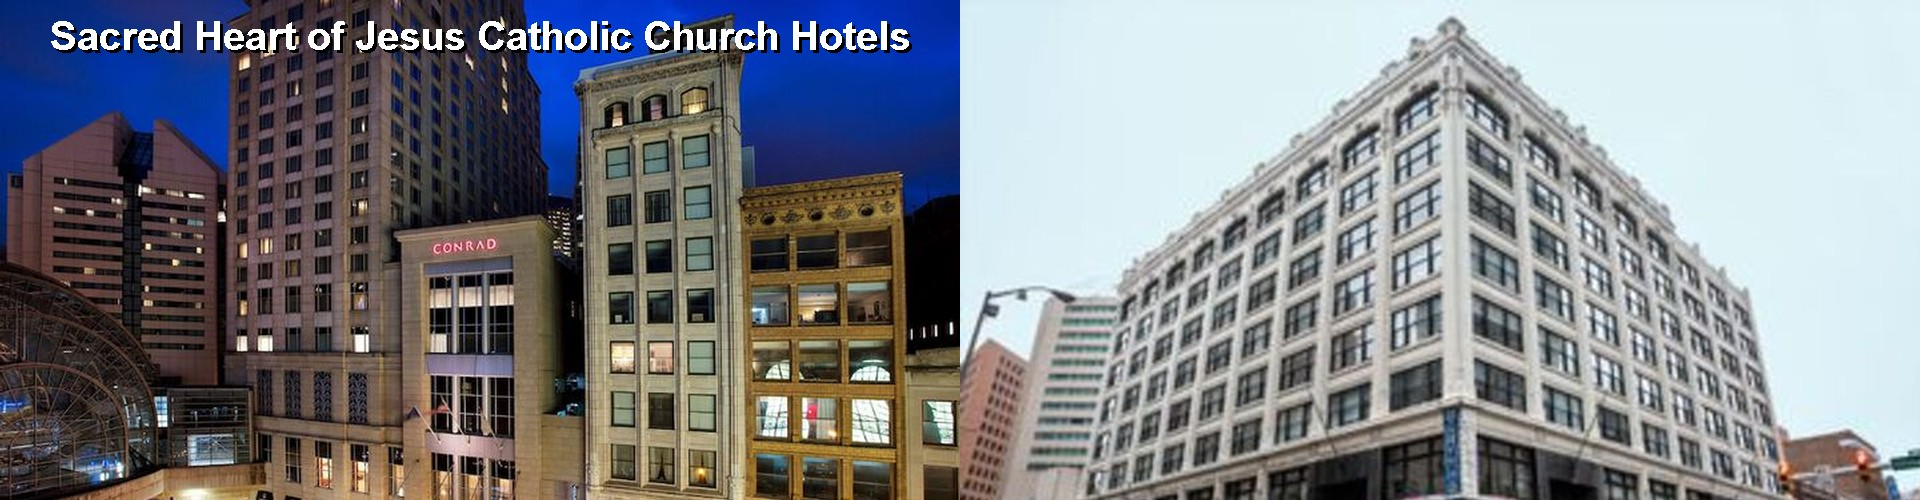 5 Best Hotels near Sacred Heart of Jesus Catholic Church